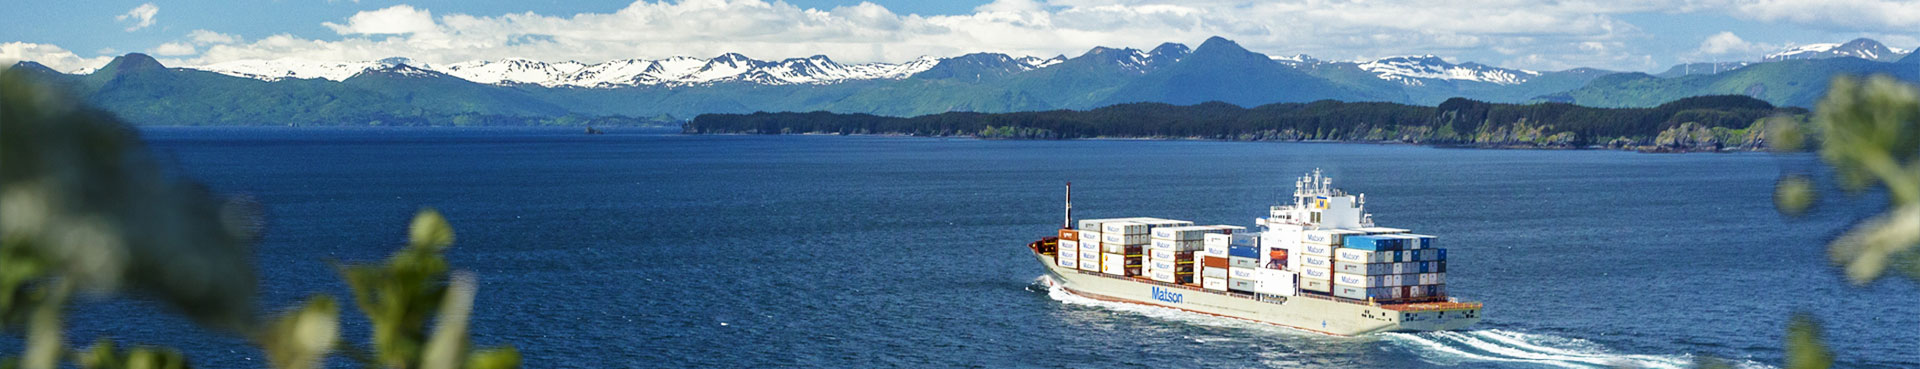 A Matson ship full of containers sails in the Alaska service.